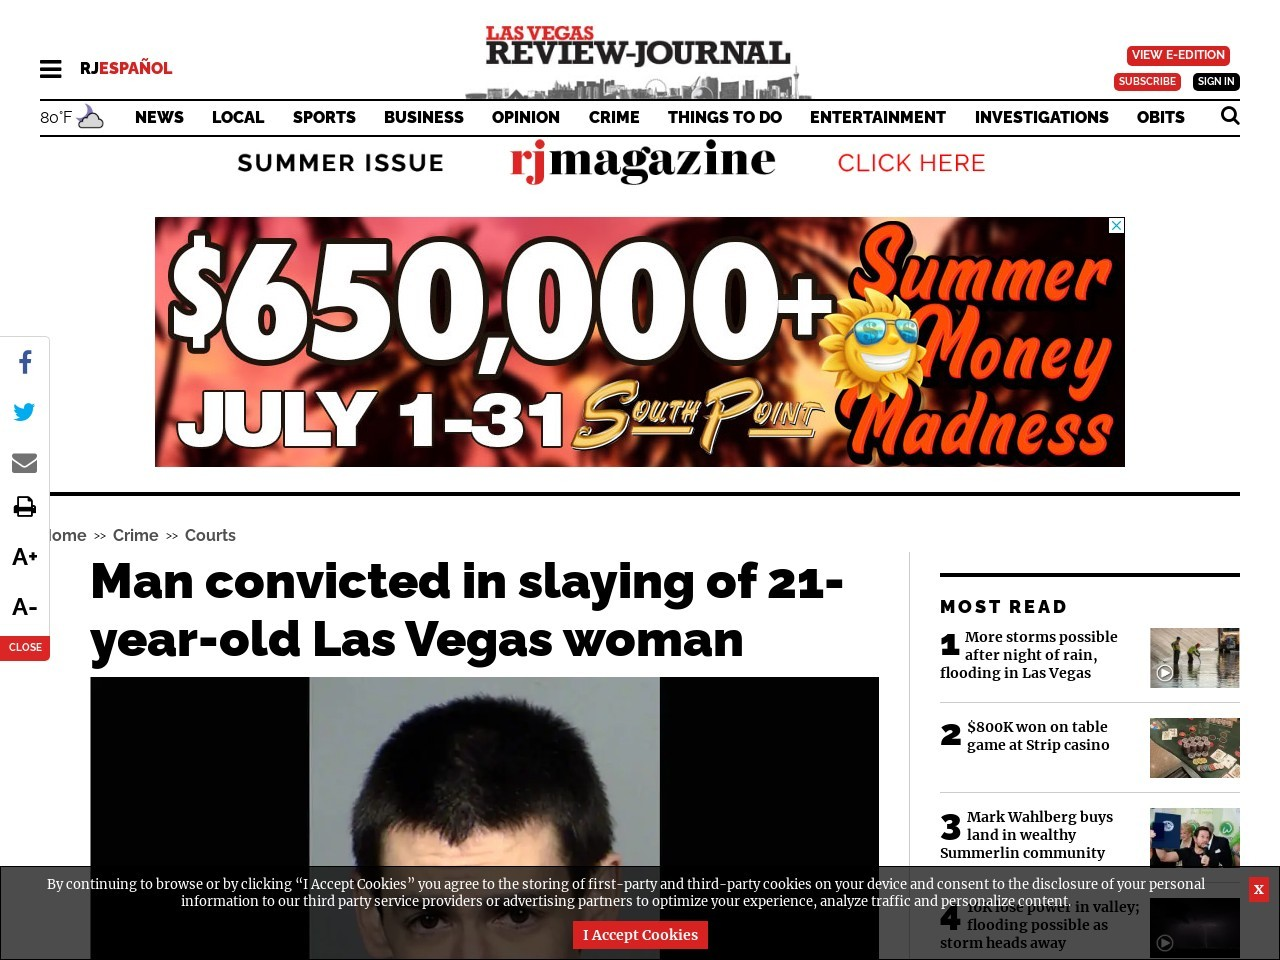 Man convicted in slaying of 21-year-old Las Vegas woman